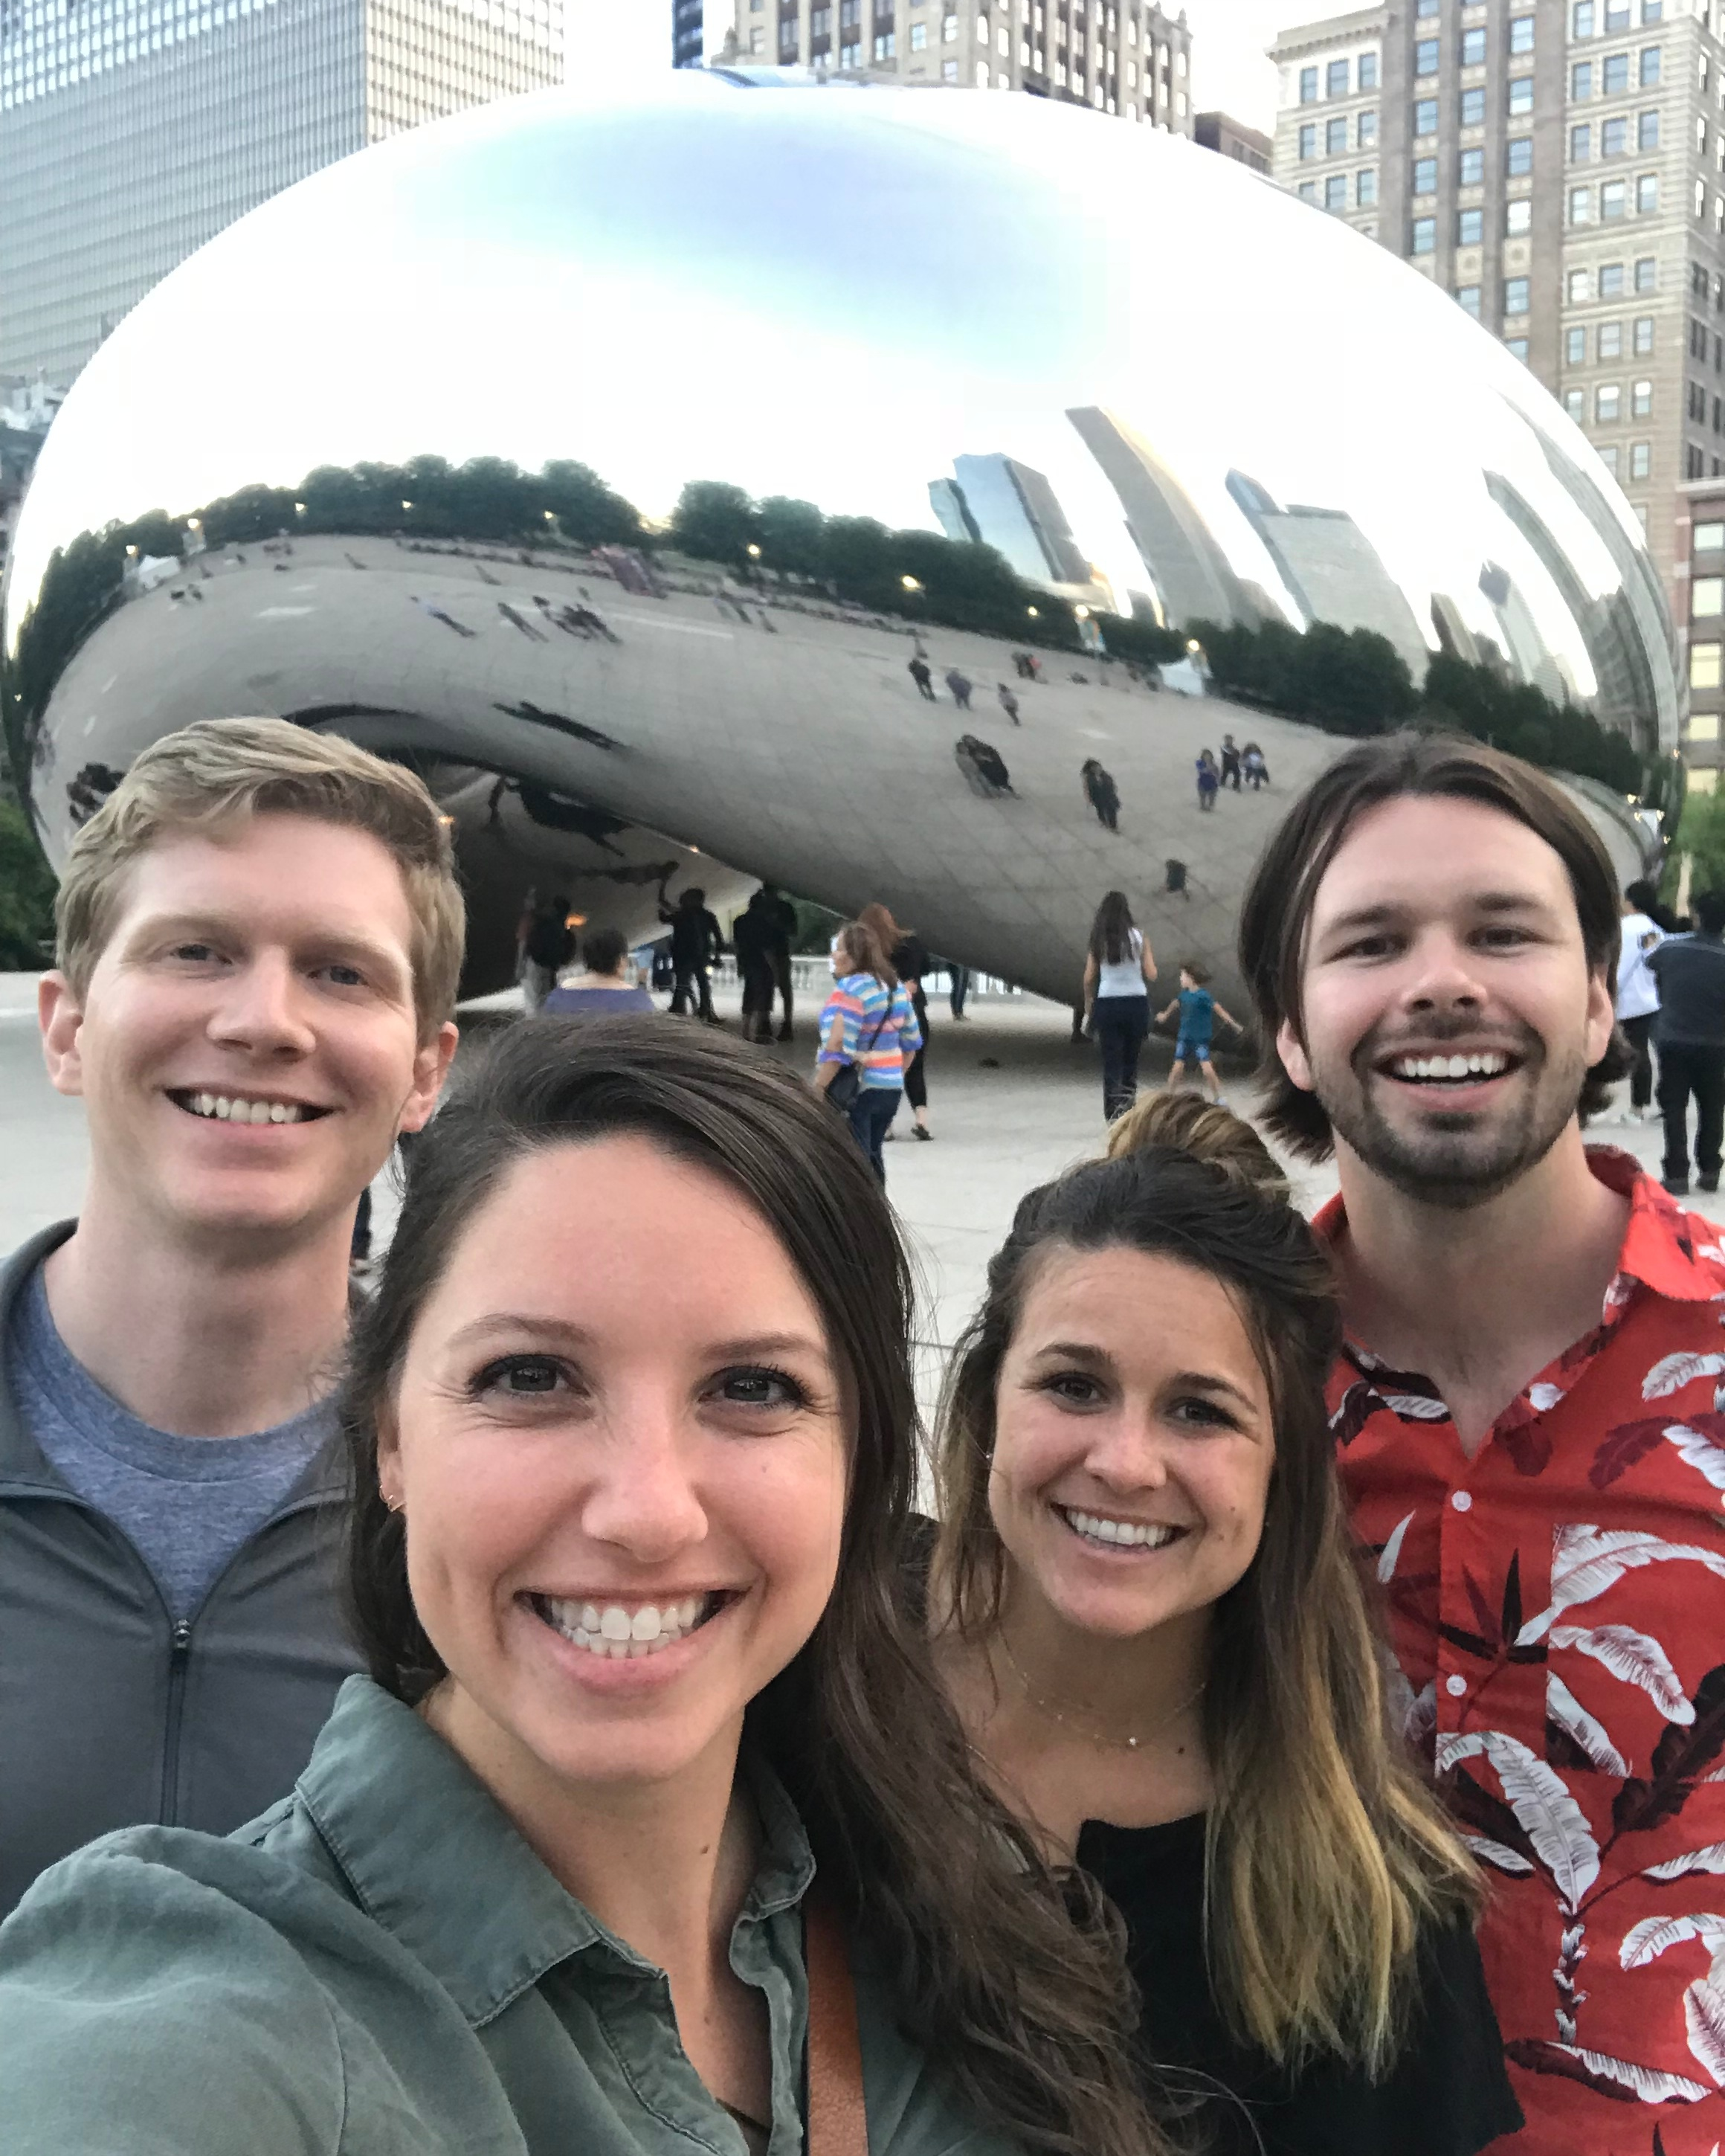 Some of the Delegator team in Chicago for IRCE 2018